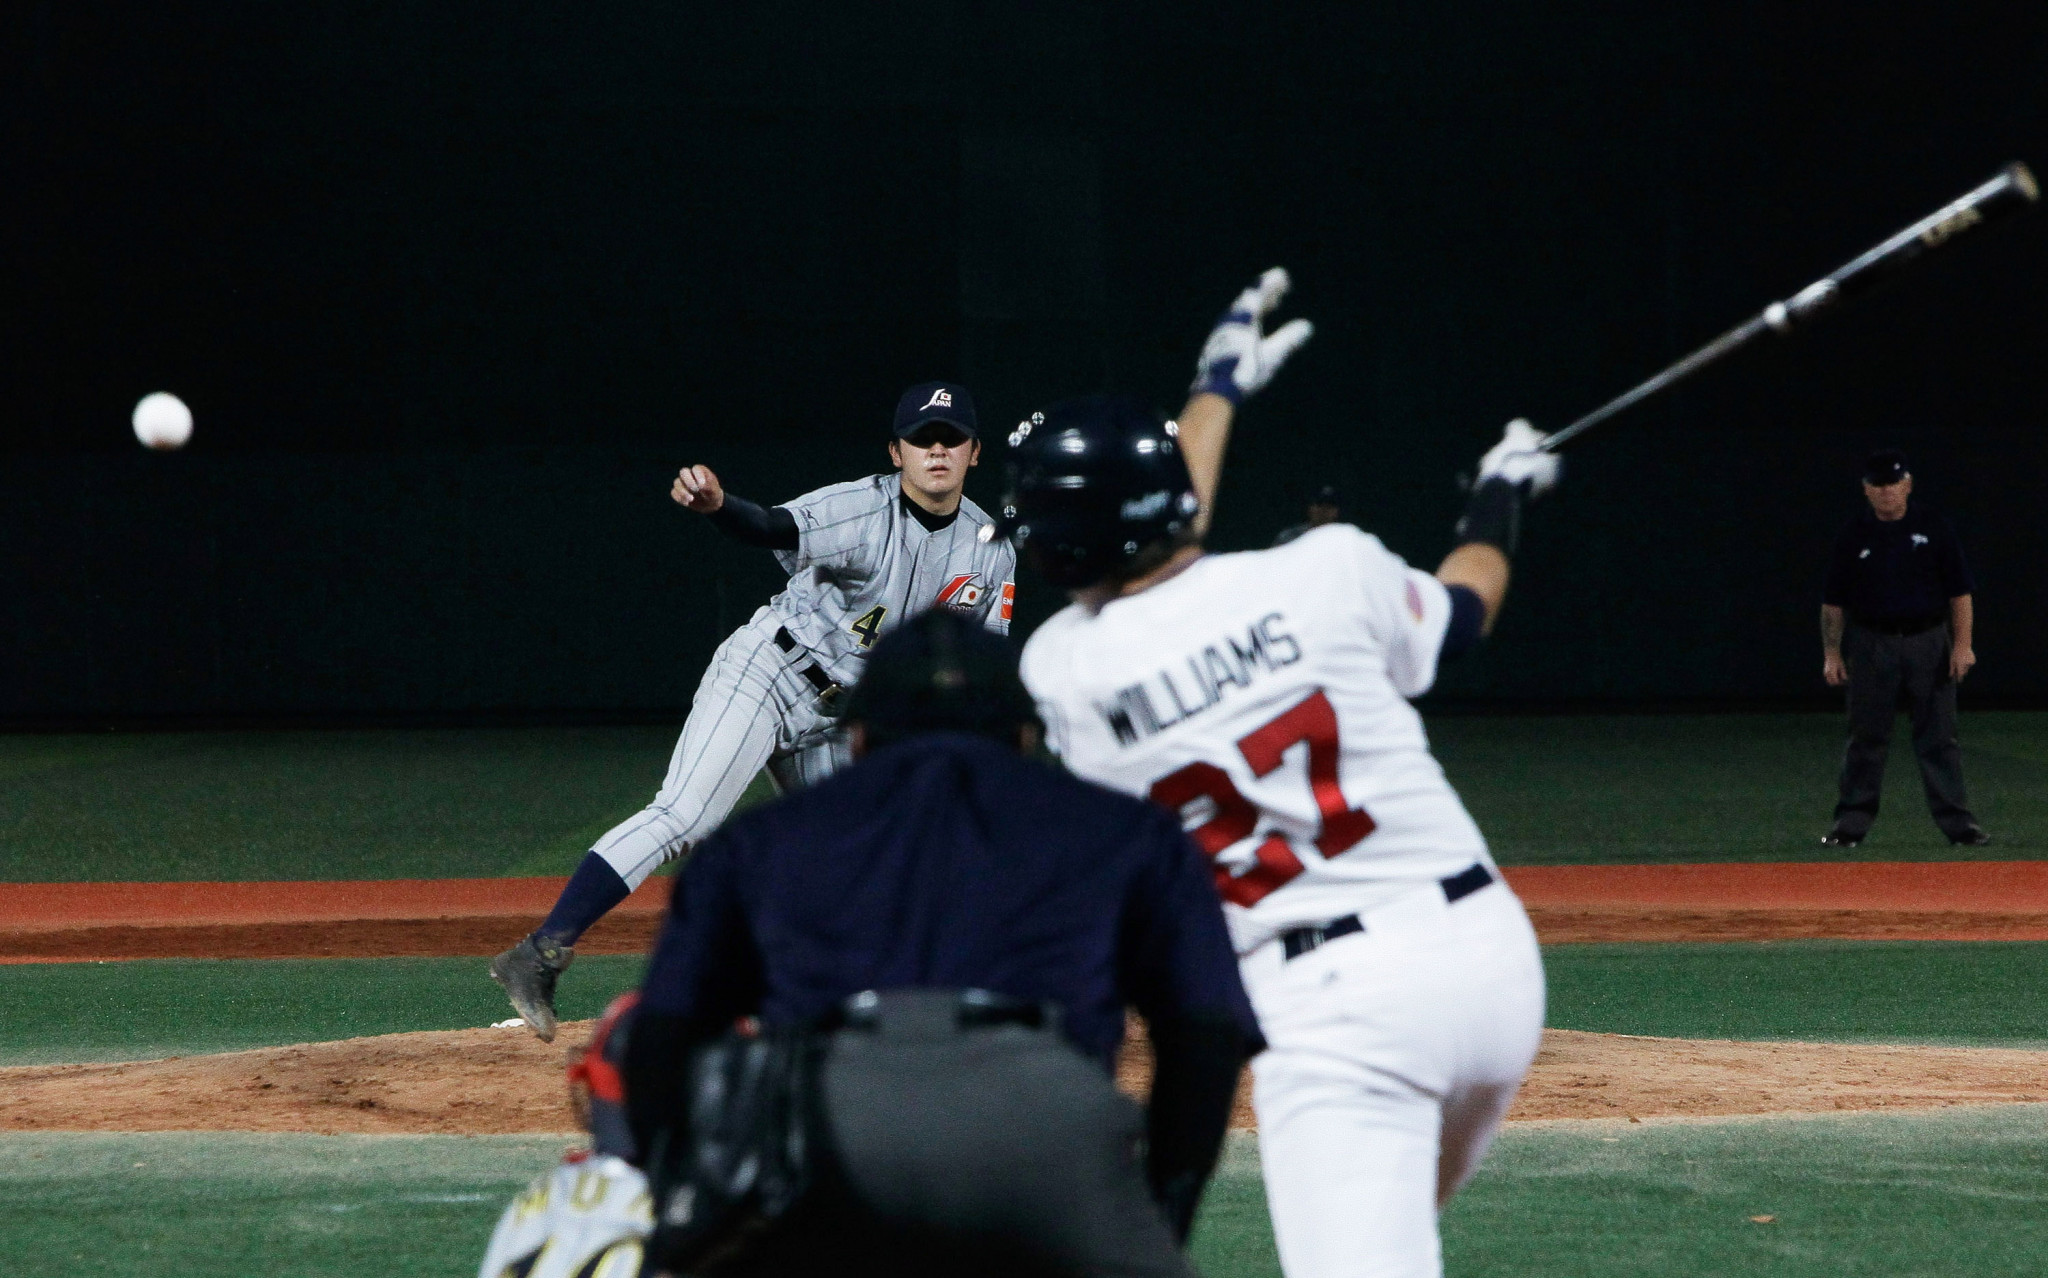 Dates for delayed WBSC Under-18 Baseball World Cup in Florida confirmed